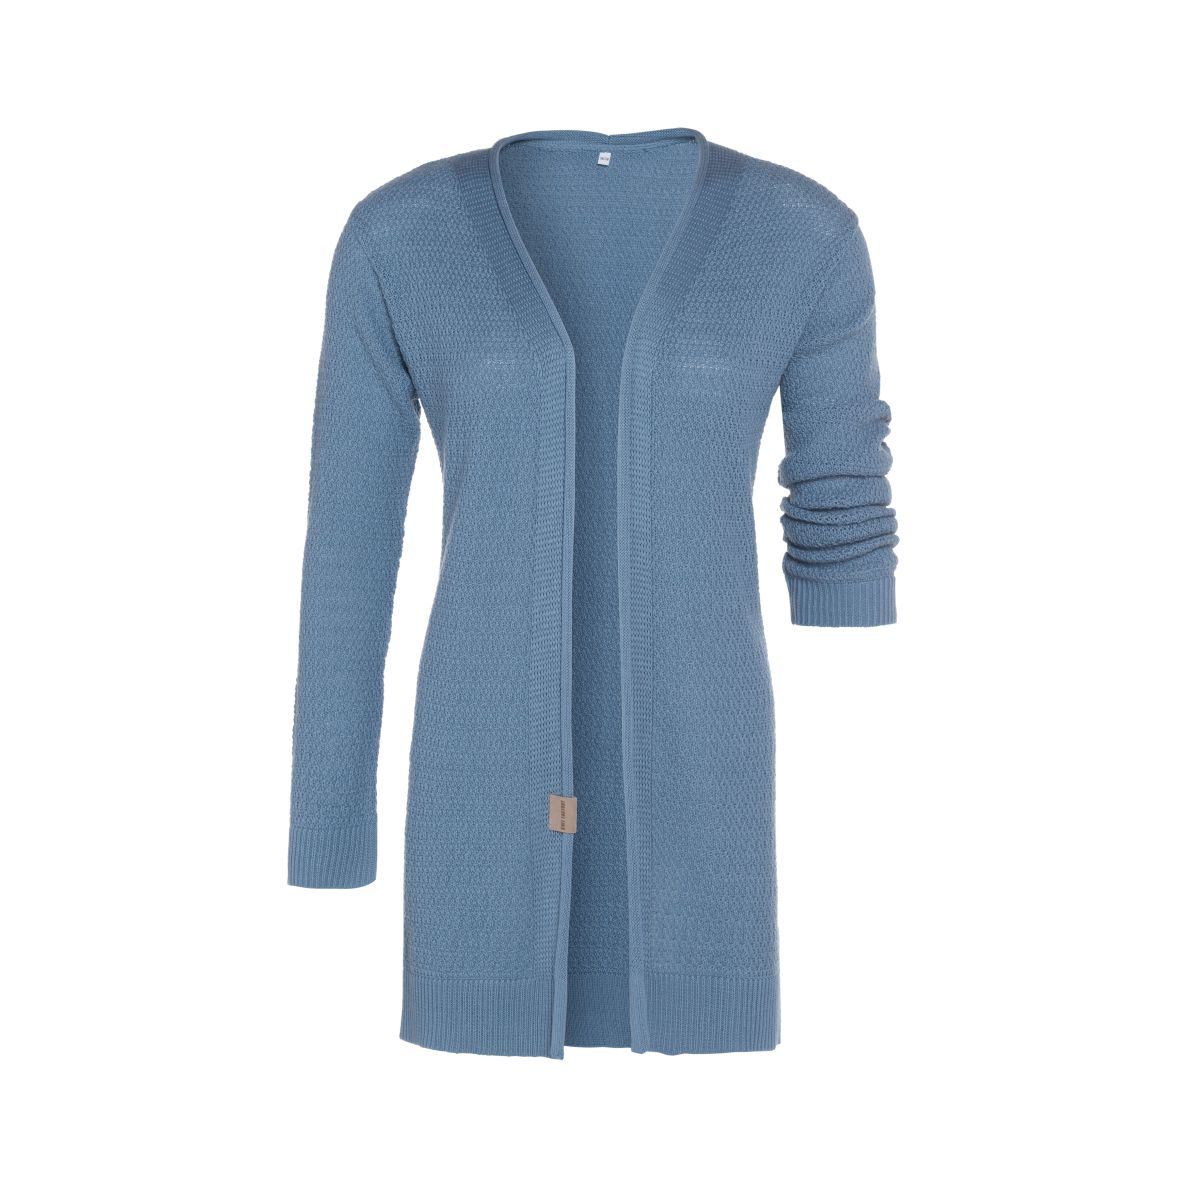 june knitted cardigan stone blue 3638